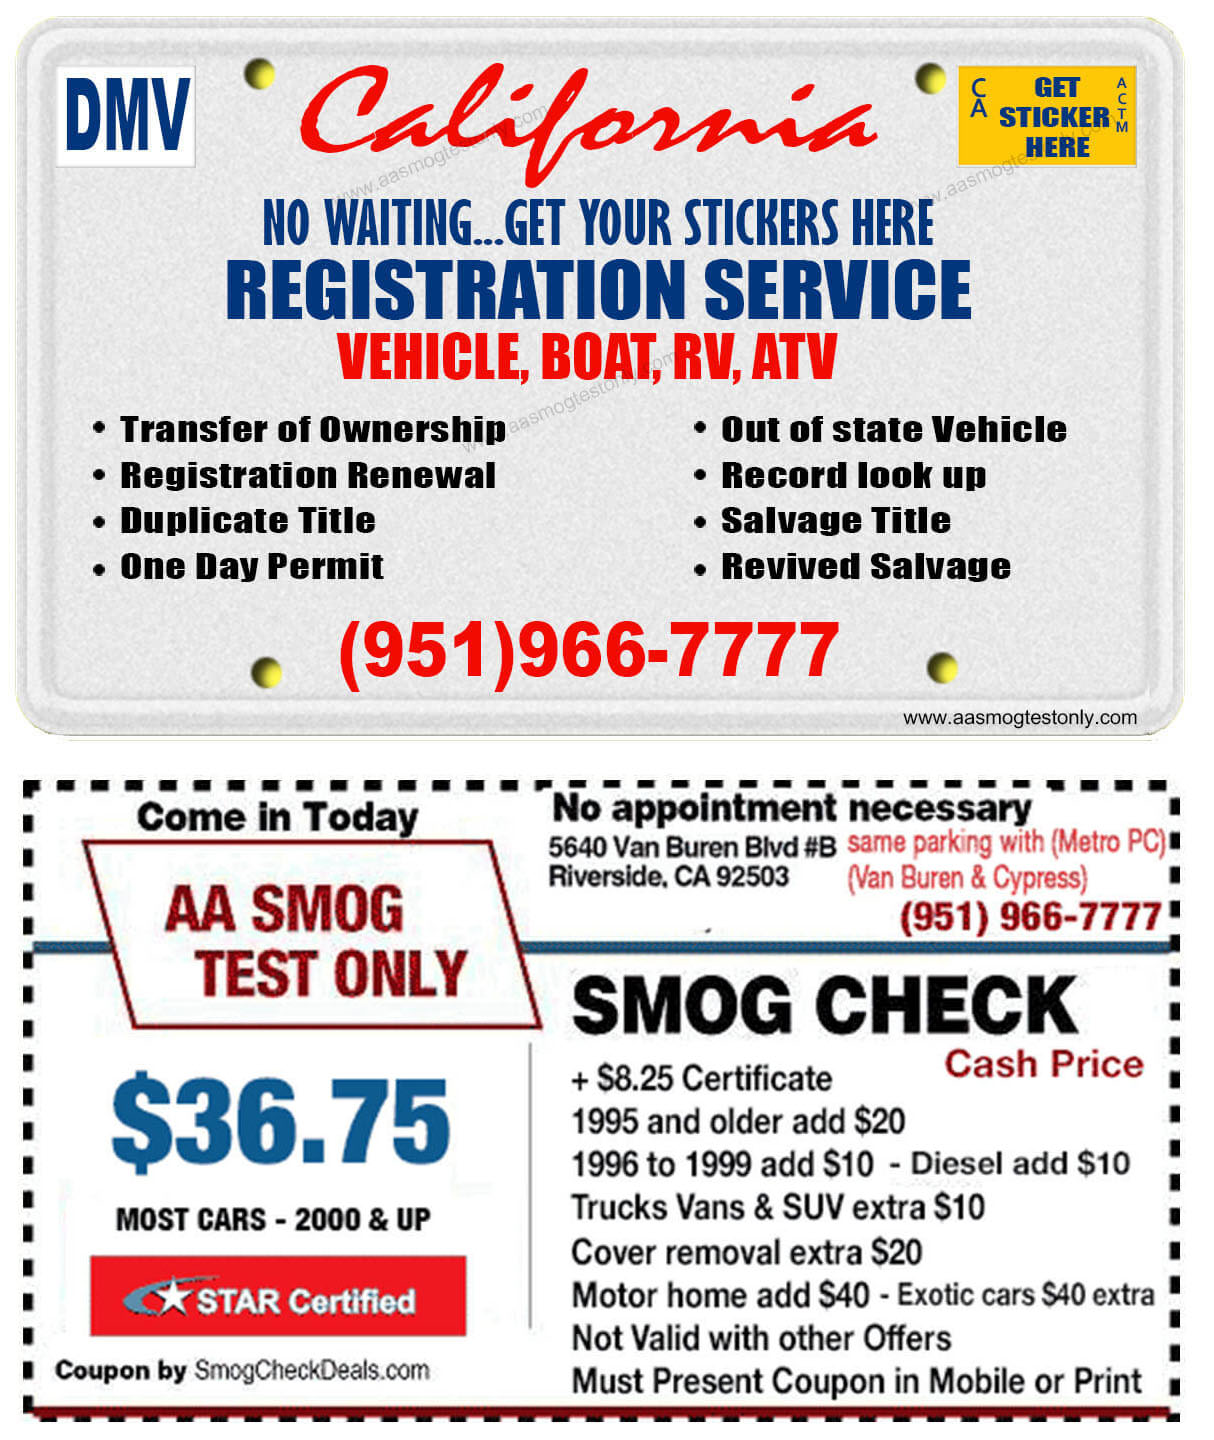 DMV Registration (951) 966-7777 - AA Smog Test Only -Fast Service